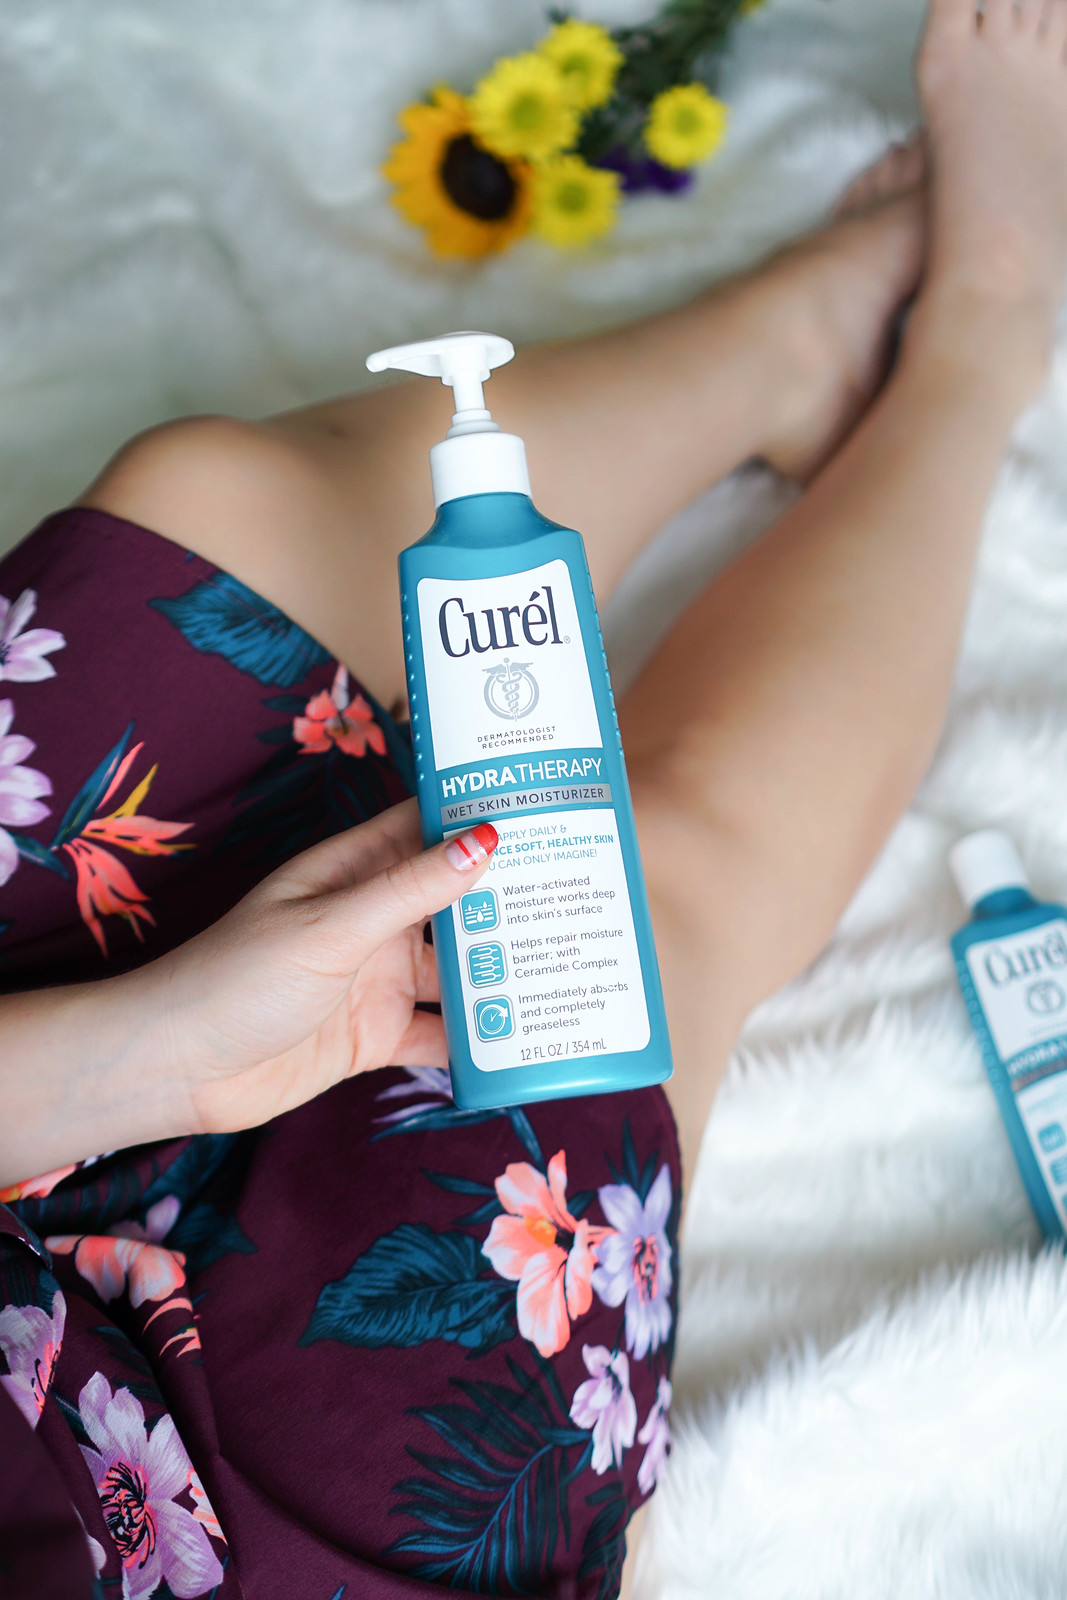 4 Reasons Why Wet Skin Moisturizer is the Best Curel Hydra Therapy Wet Skin Moisturizer Review